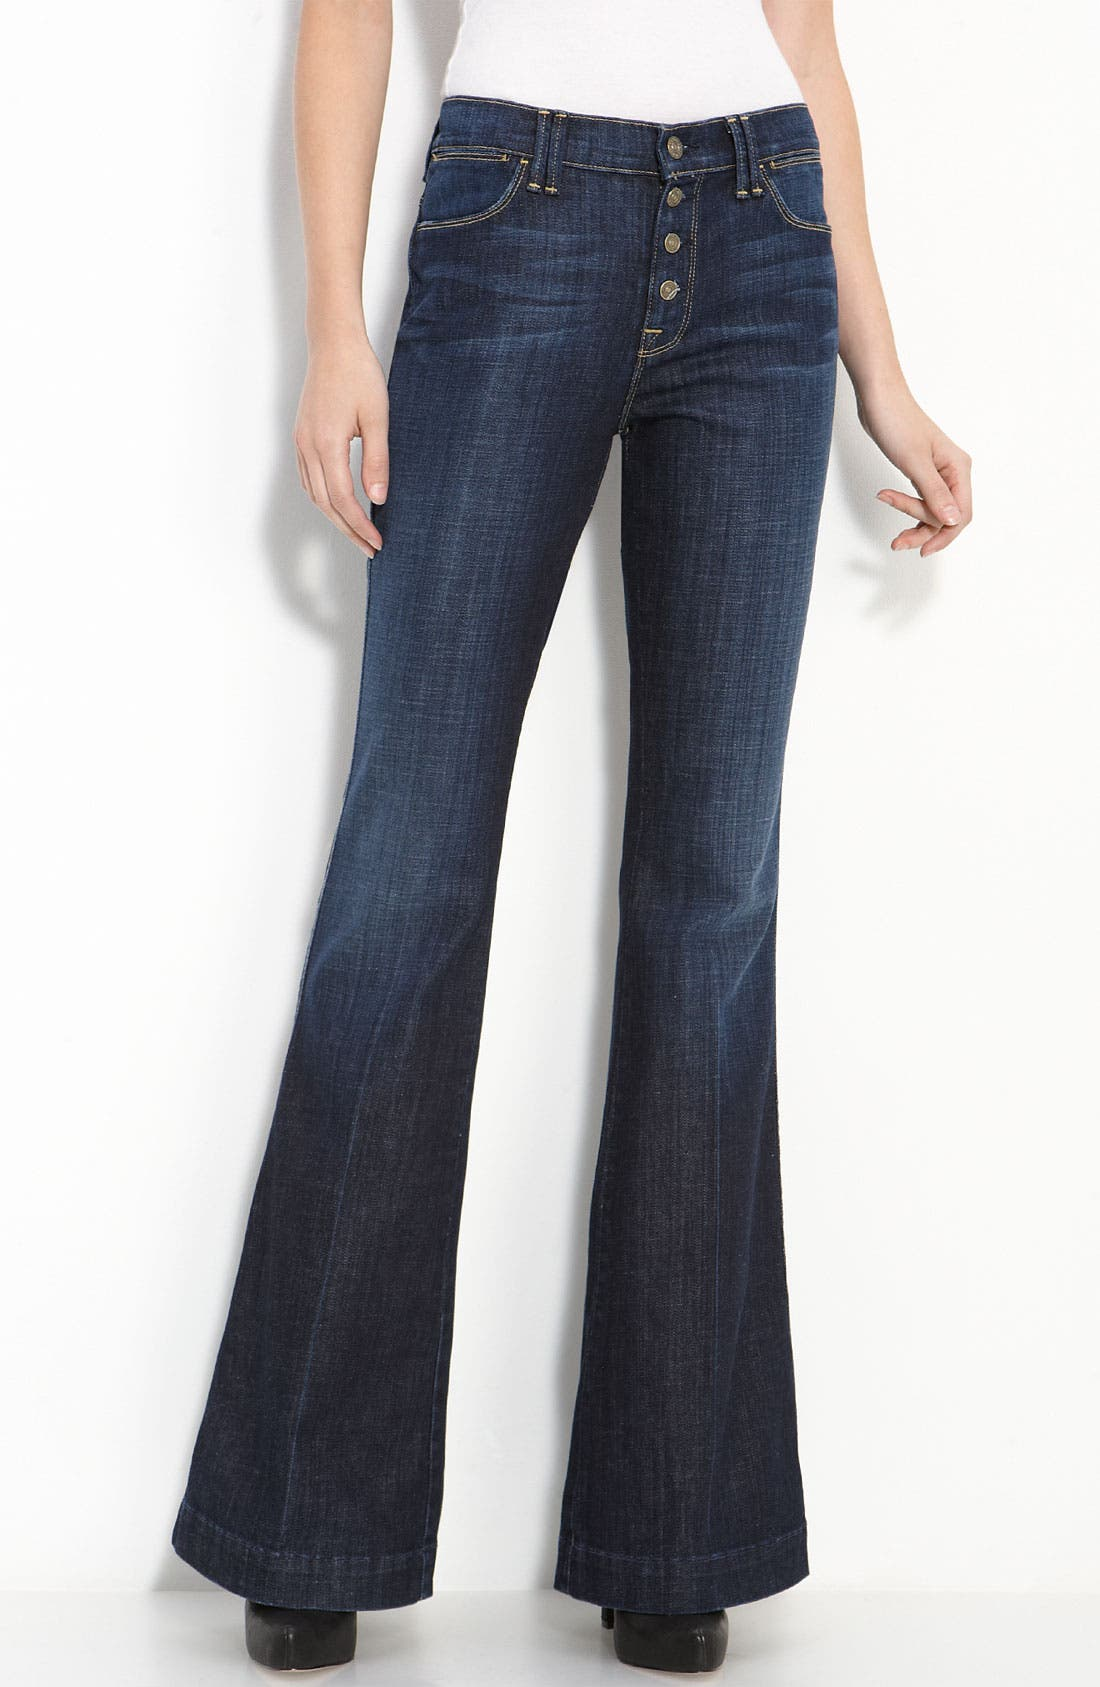 Main Image - 7 For All Mankind® 'Bianca' Flare Leg Stretch Jeans (Los Angeles Dark Wash)